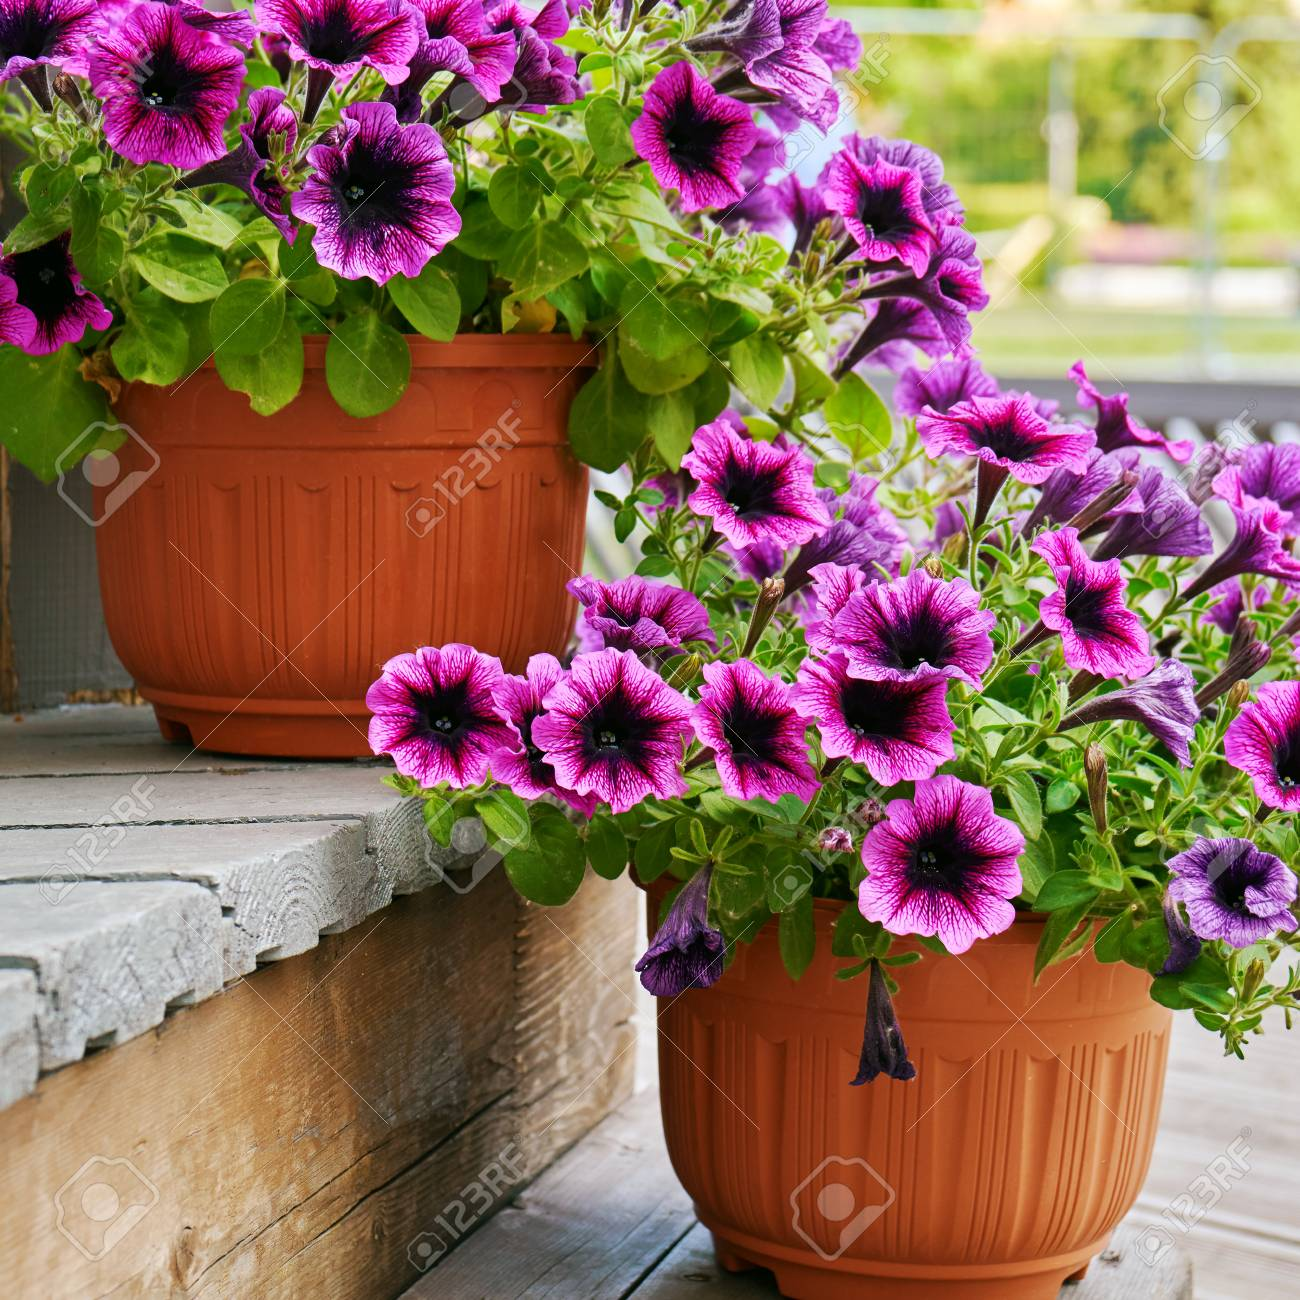 Petunia Flowers Growing In Flower Pots On The Wooden Staircase